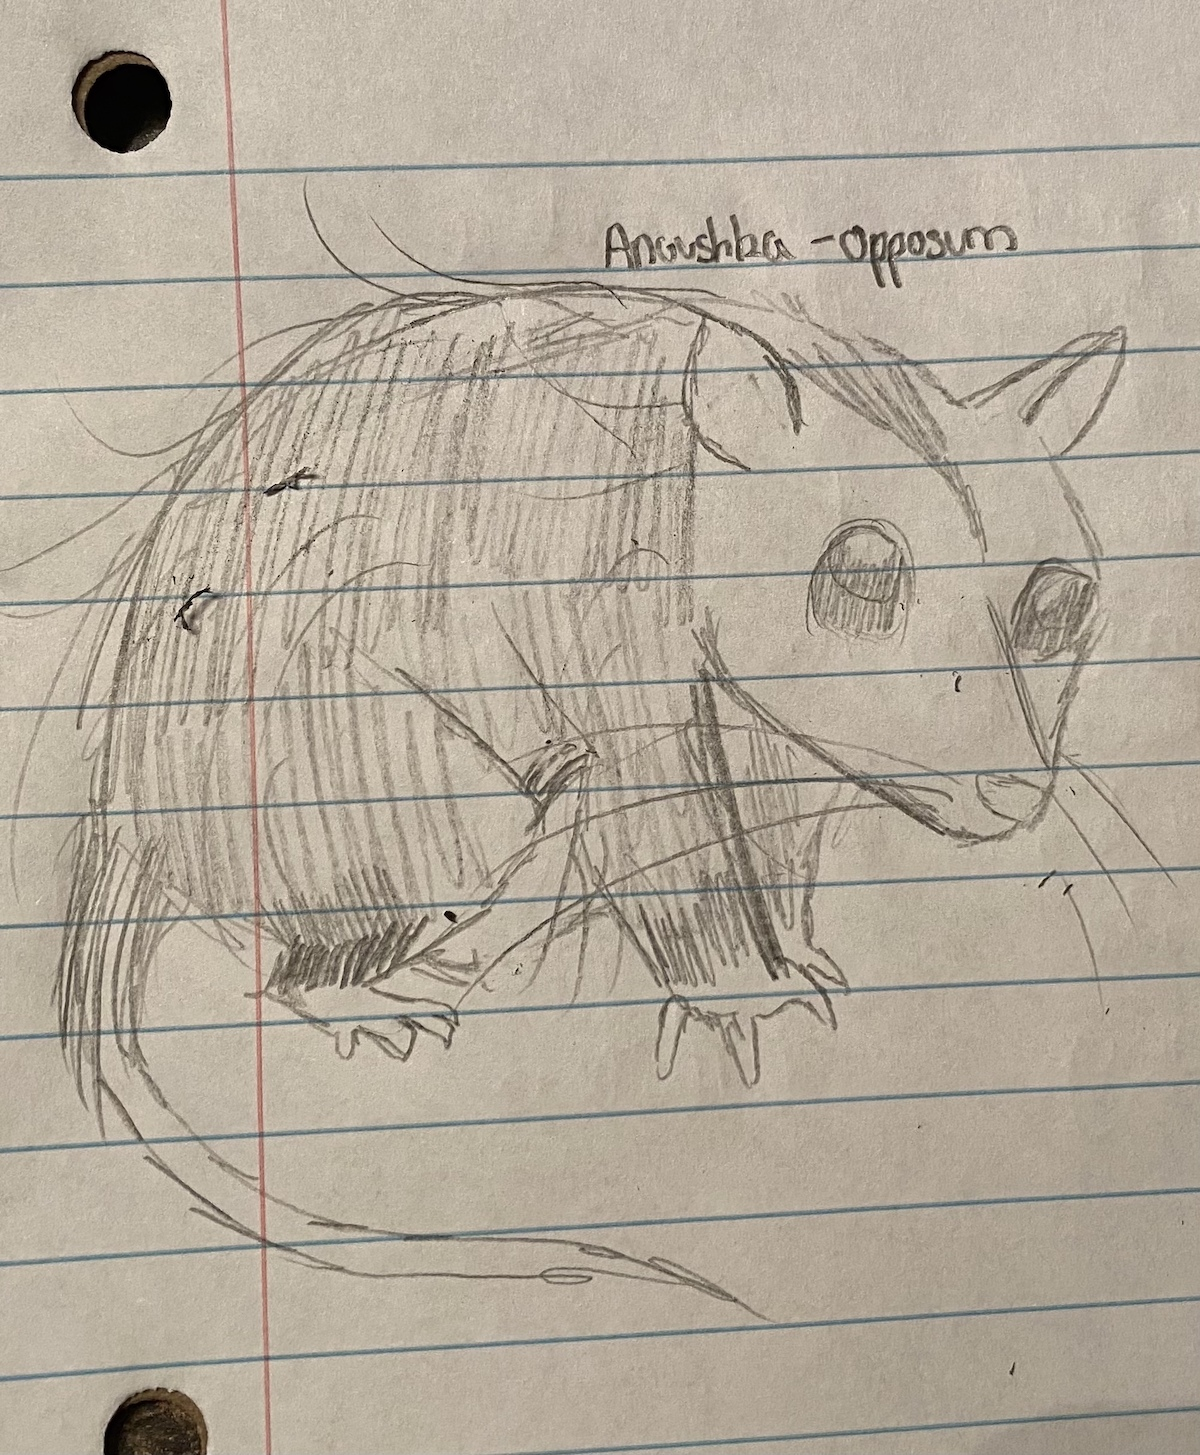 sketch of an opossum on notebook paper